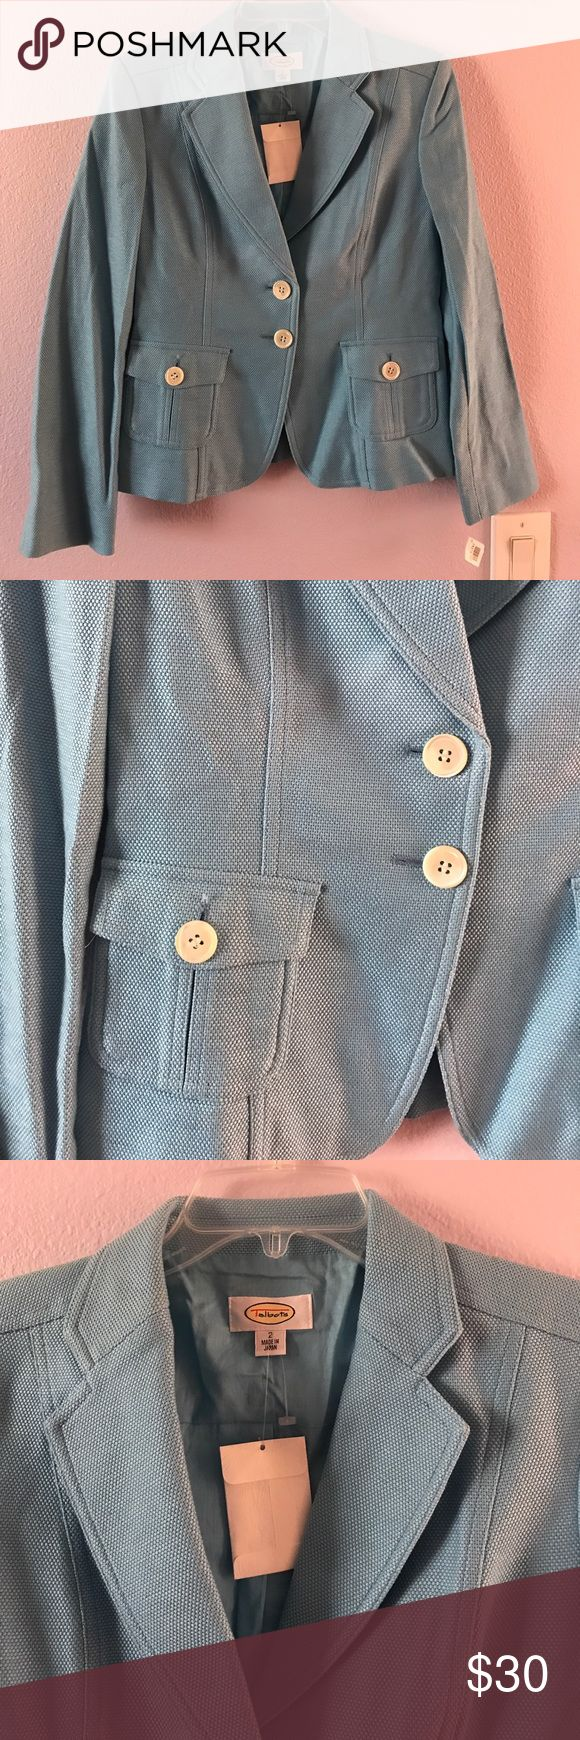 Vintage new light blue Talbots cotton jacket Vintage new light blue Talbots cotton jacket with extra buttons. Very cute. Made in Japan Talbots Jackets & Coats Blazers